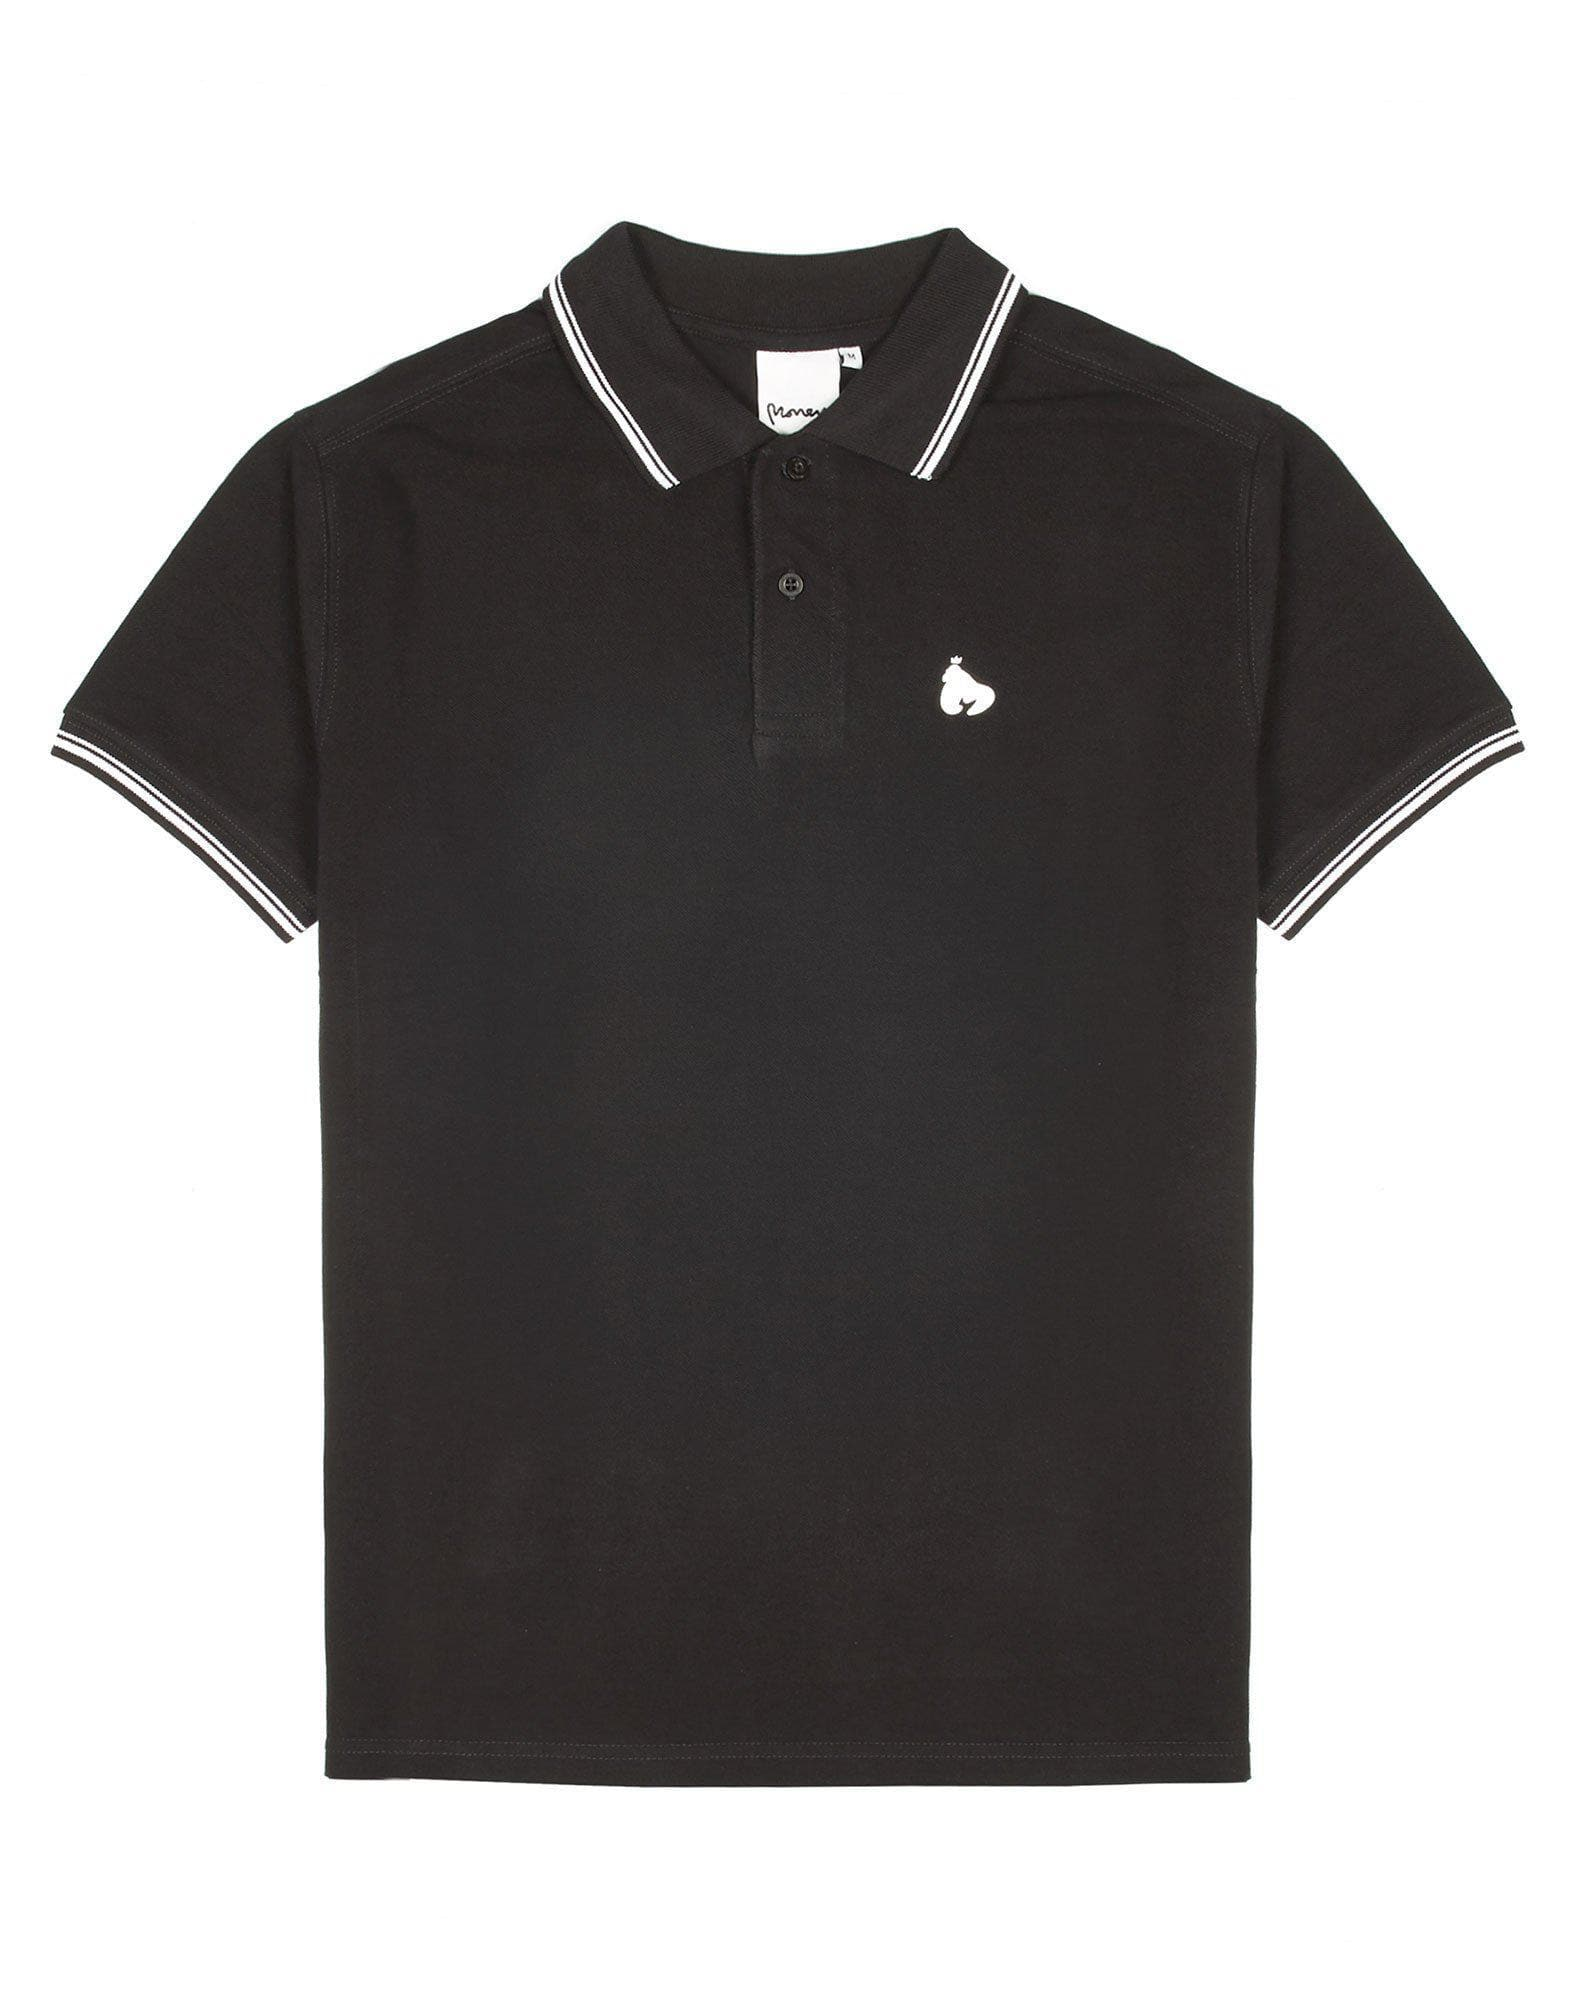 Money Clothing Double Stripe Polo Tee